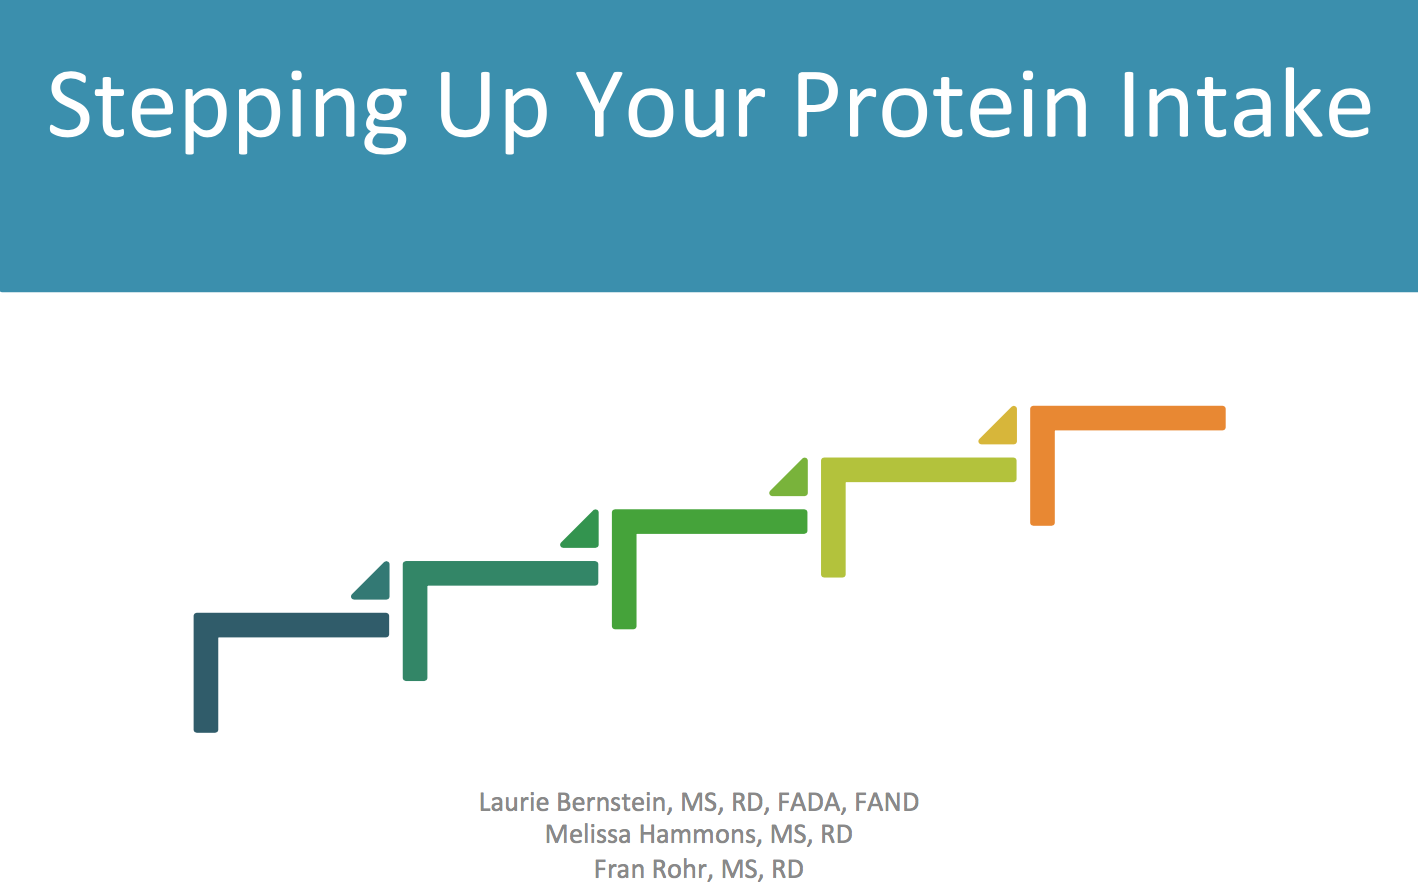 Stepping Up Your Protein Intake Image